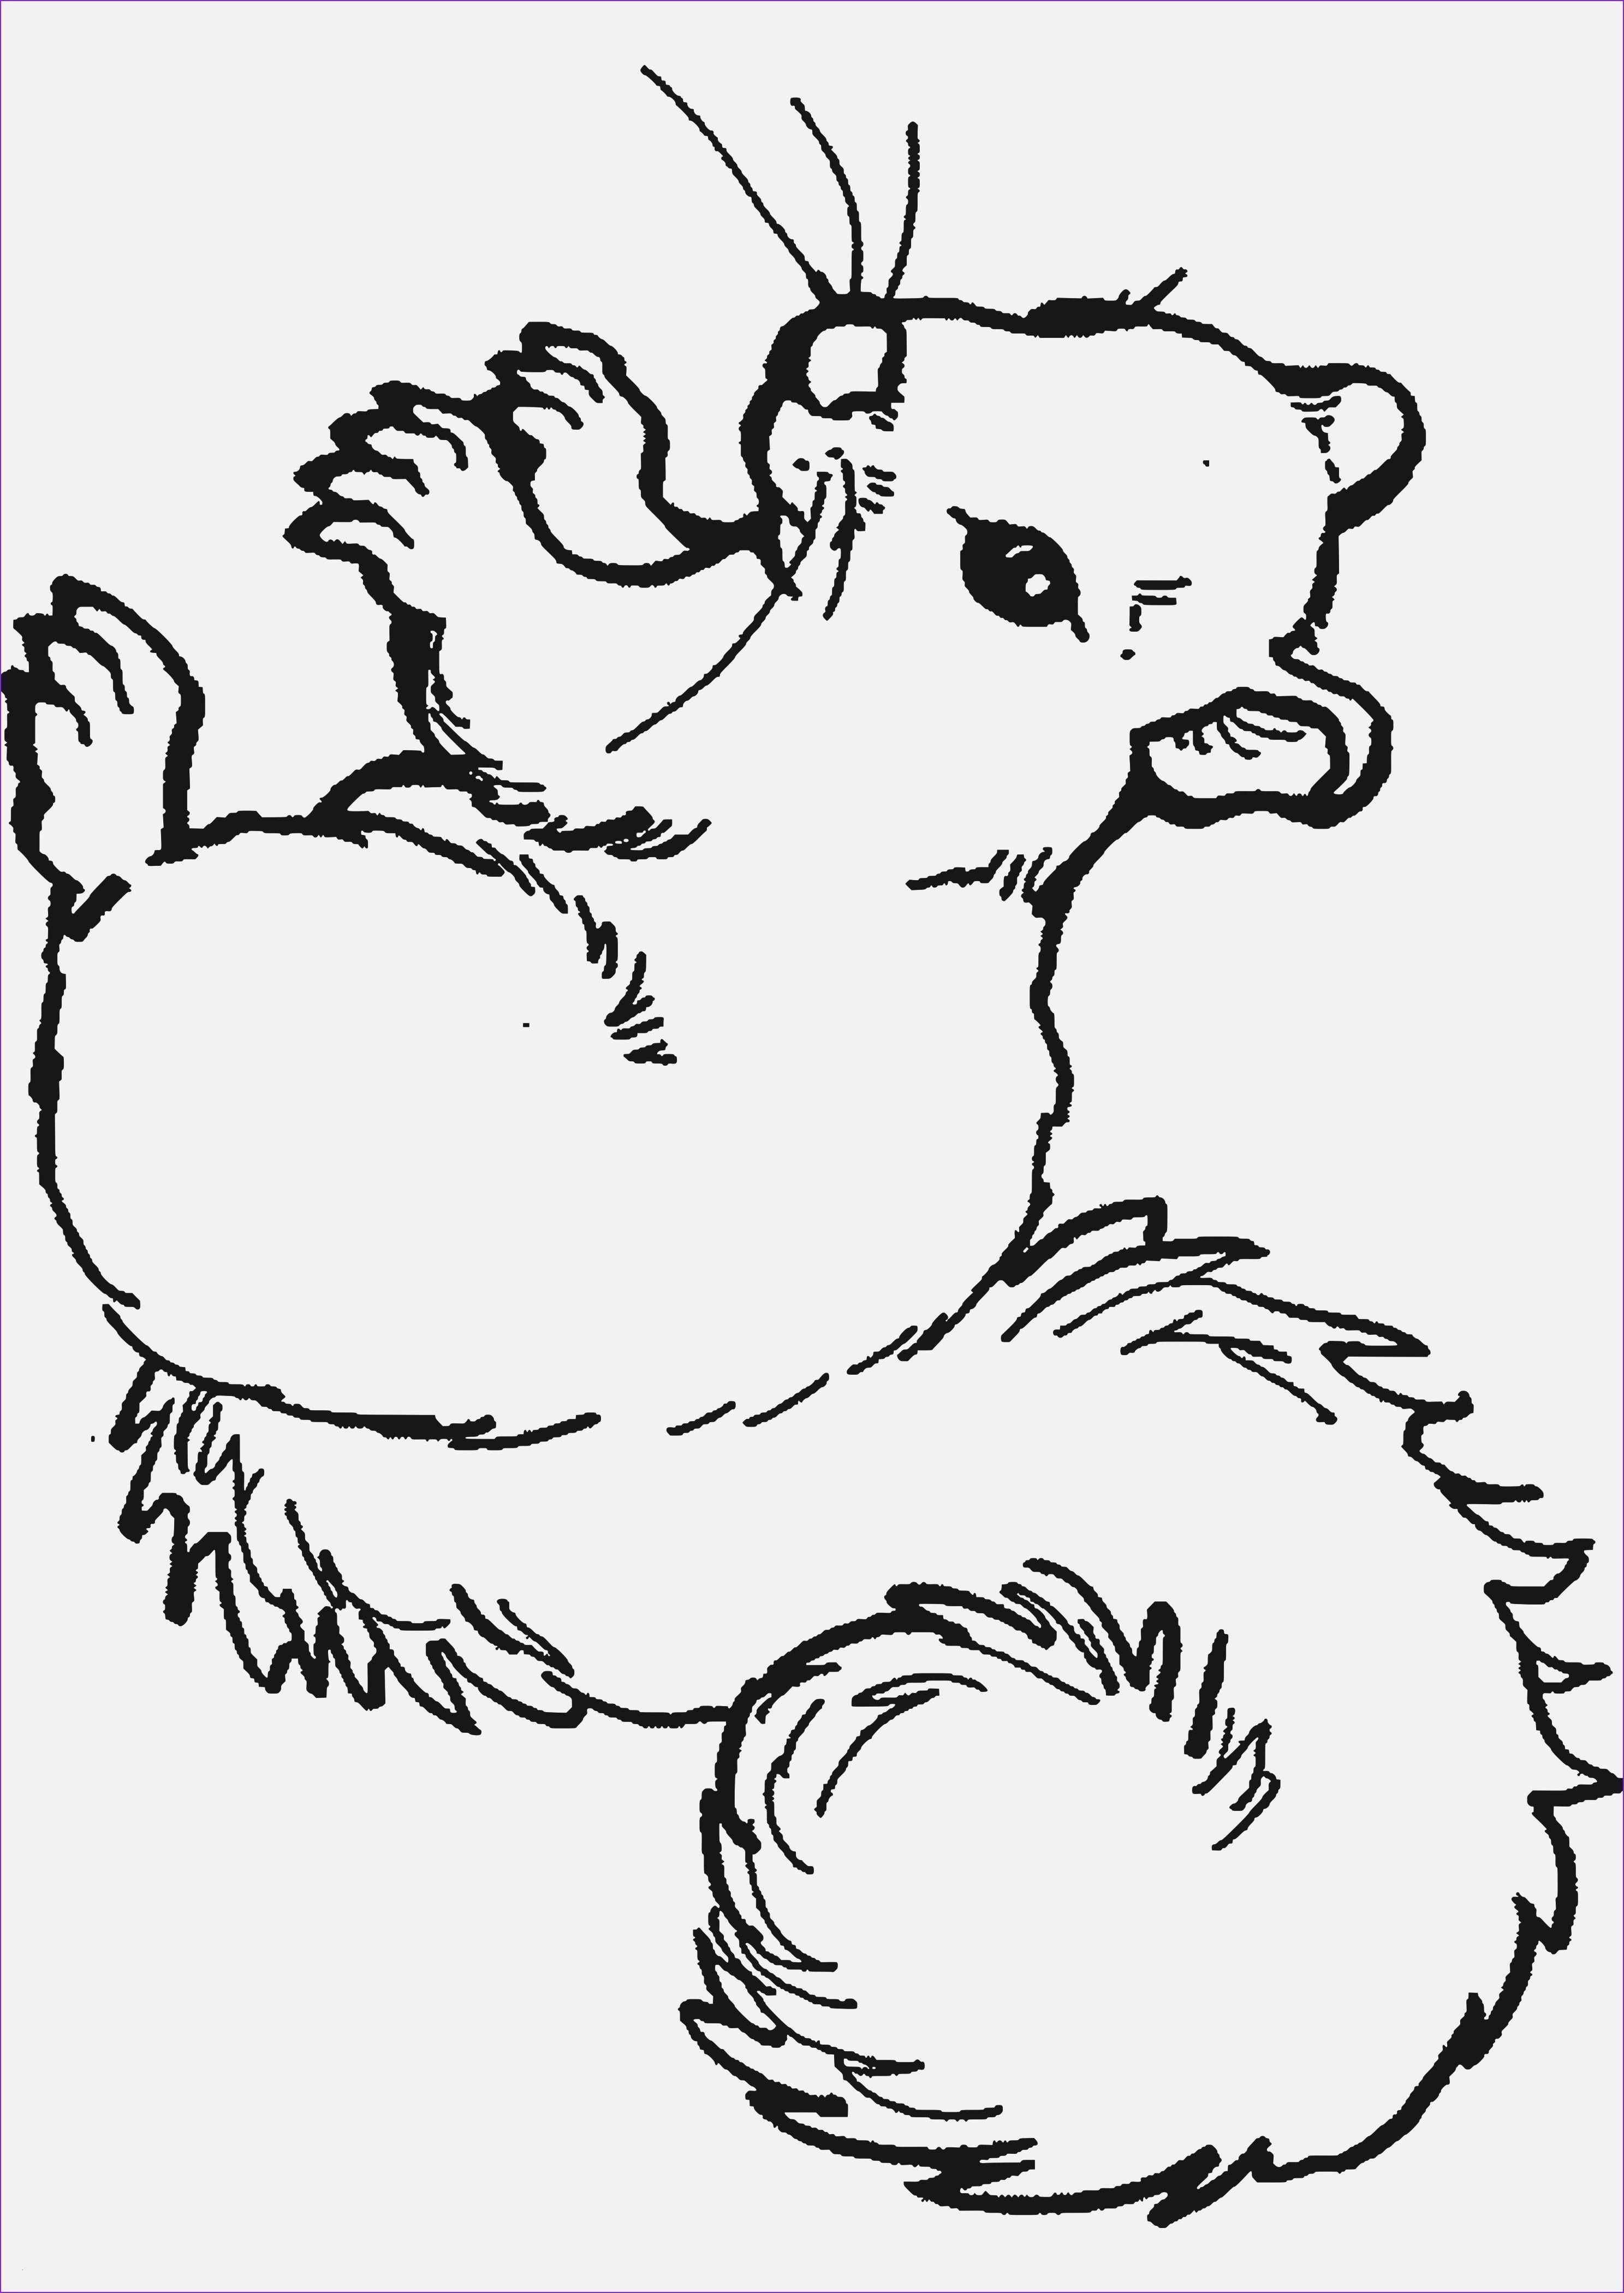 Neu Malvorlagen Fantasie Tiere Coloring Pictures Of Animals Farm Animal Coloring Pages Coloring Pictures